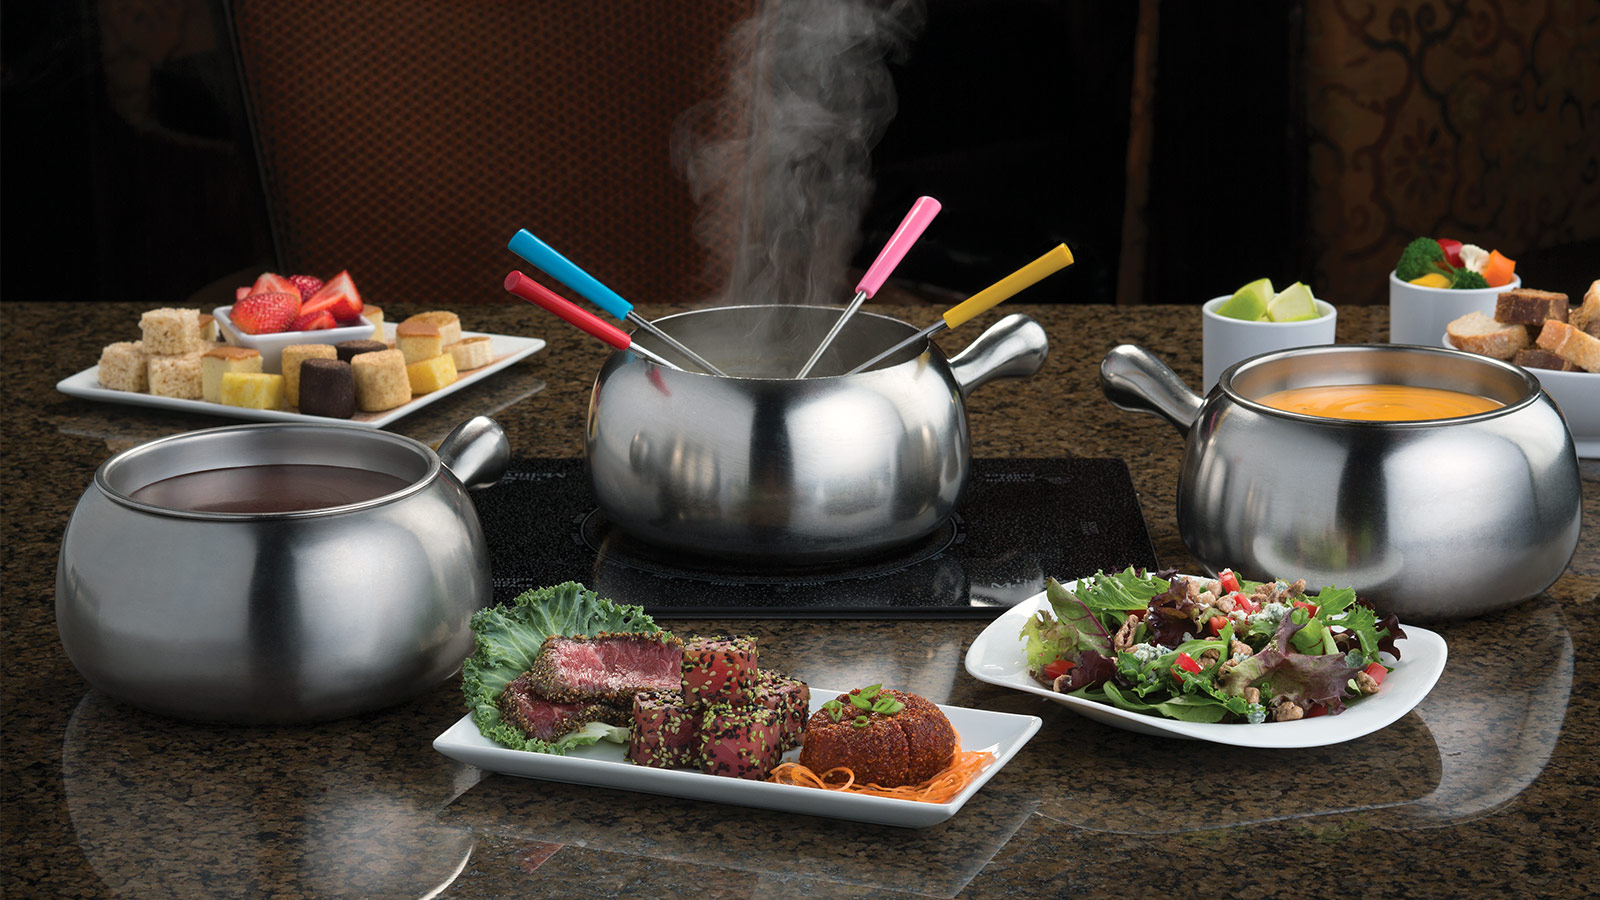 Melting Pot OKC Fine Dining Fondue Restaurants in  : hero menu from www.meltingpot.com size 1600 x 900 jpeg 327kB